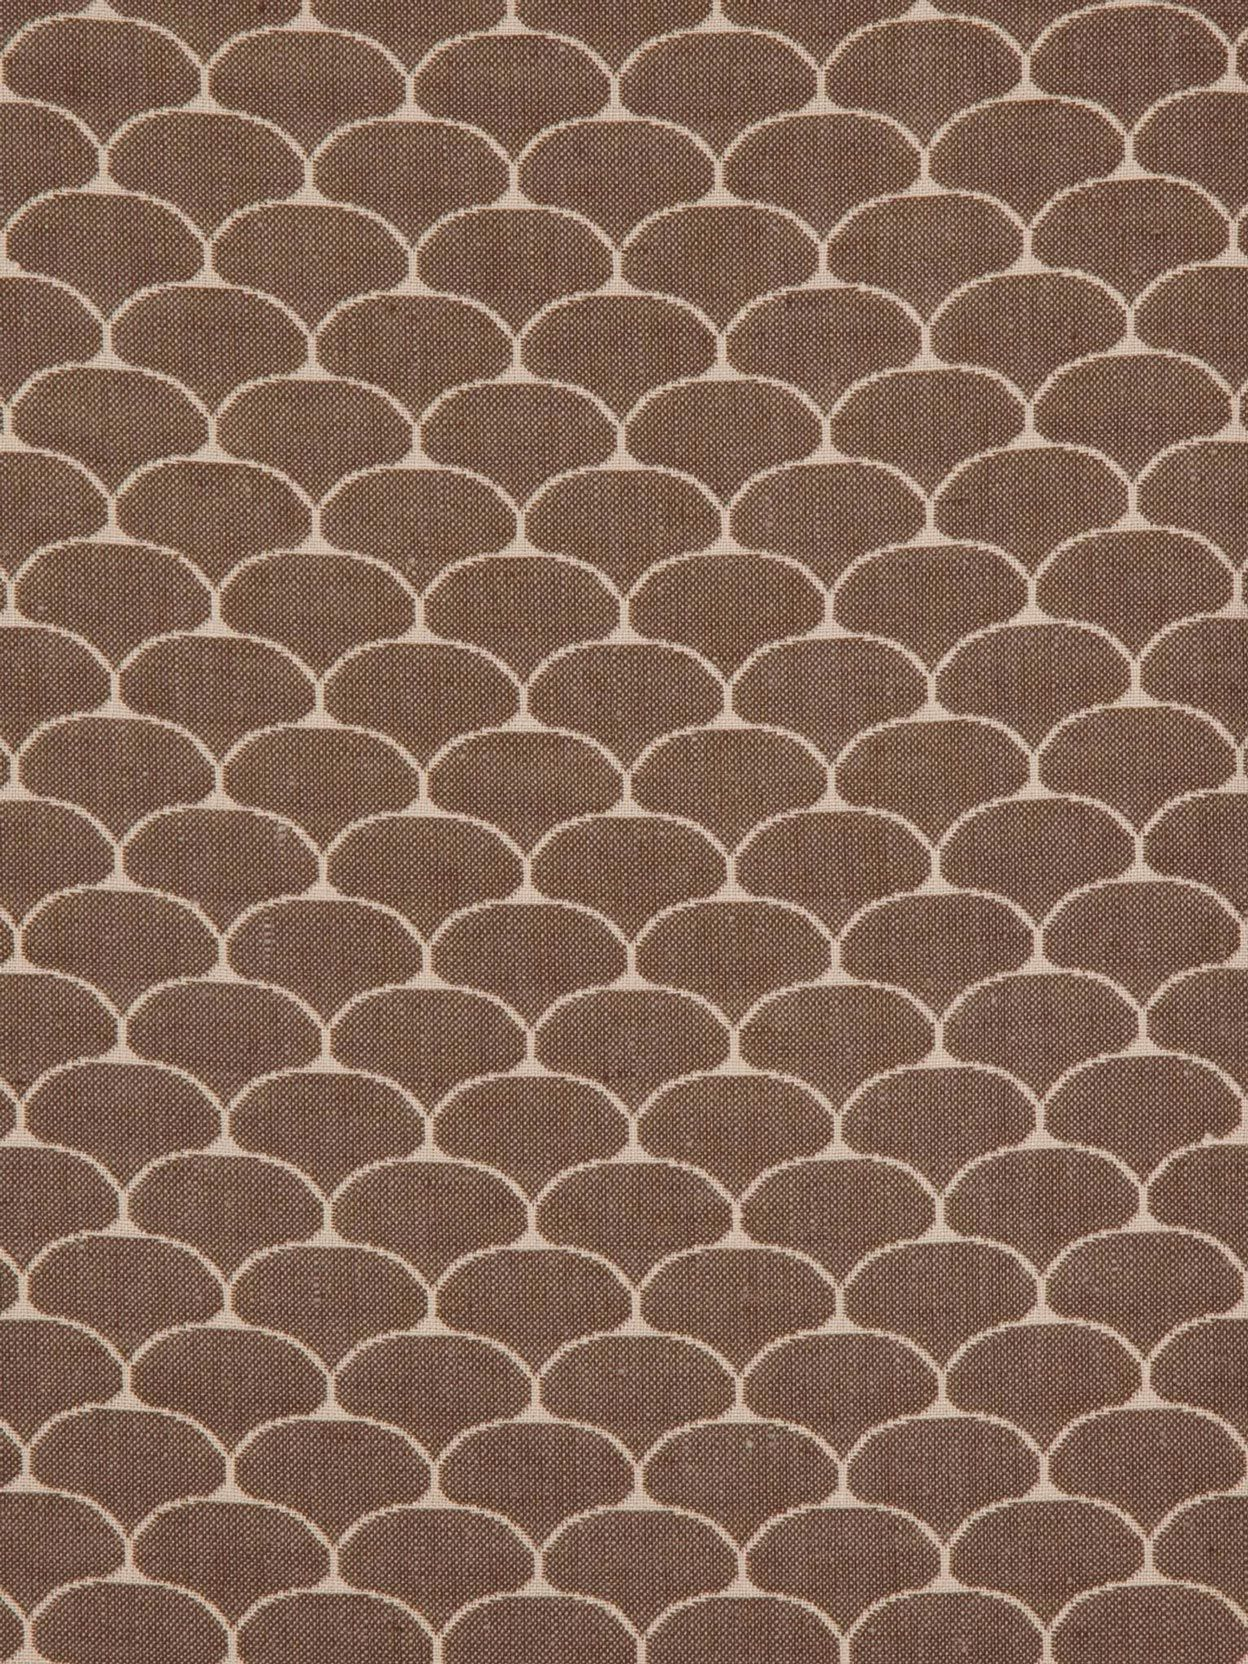 Louly DE92020CM Pattern Fabric Linen fabric